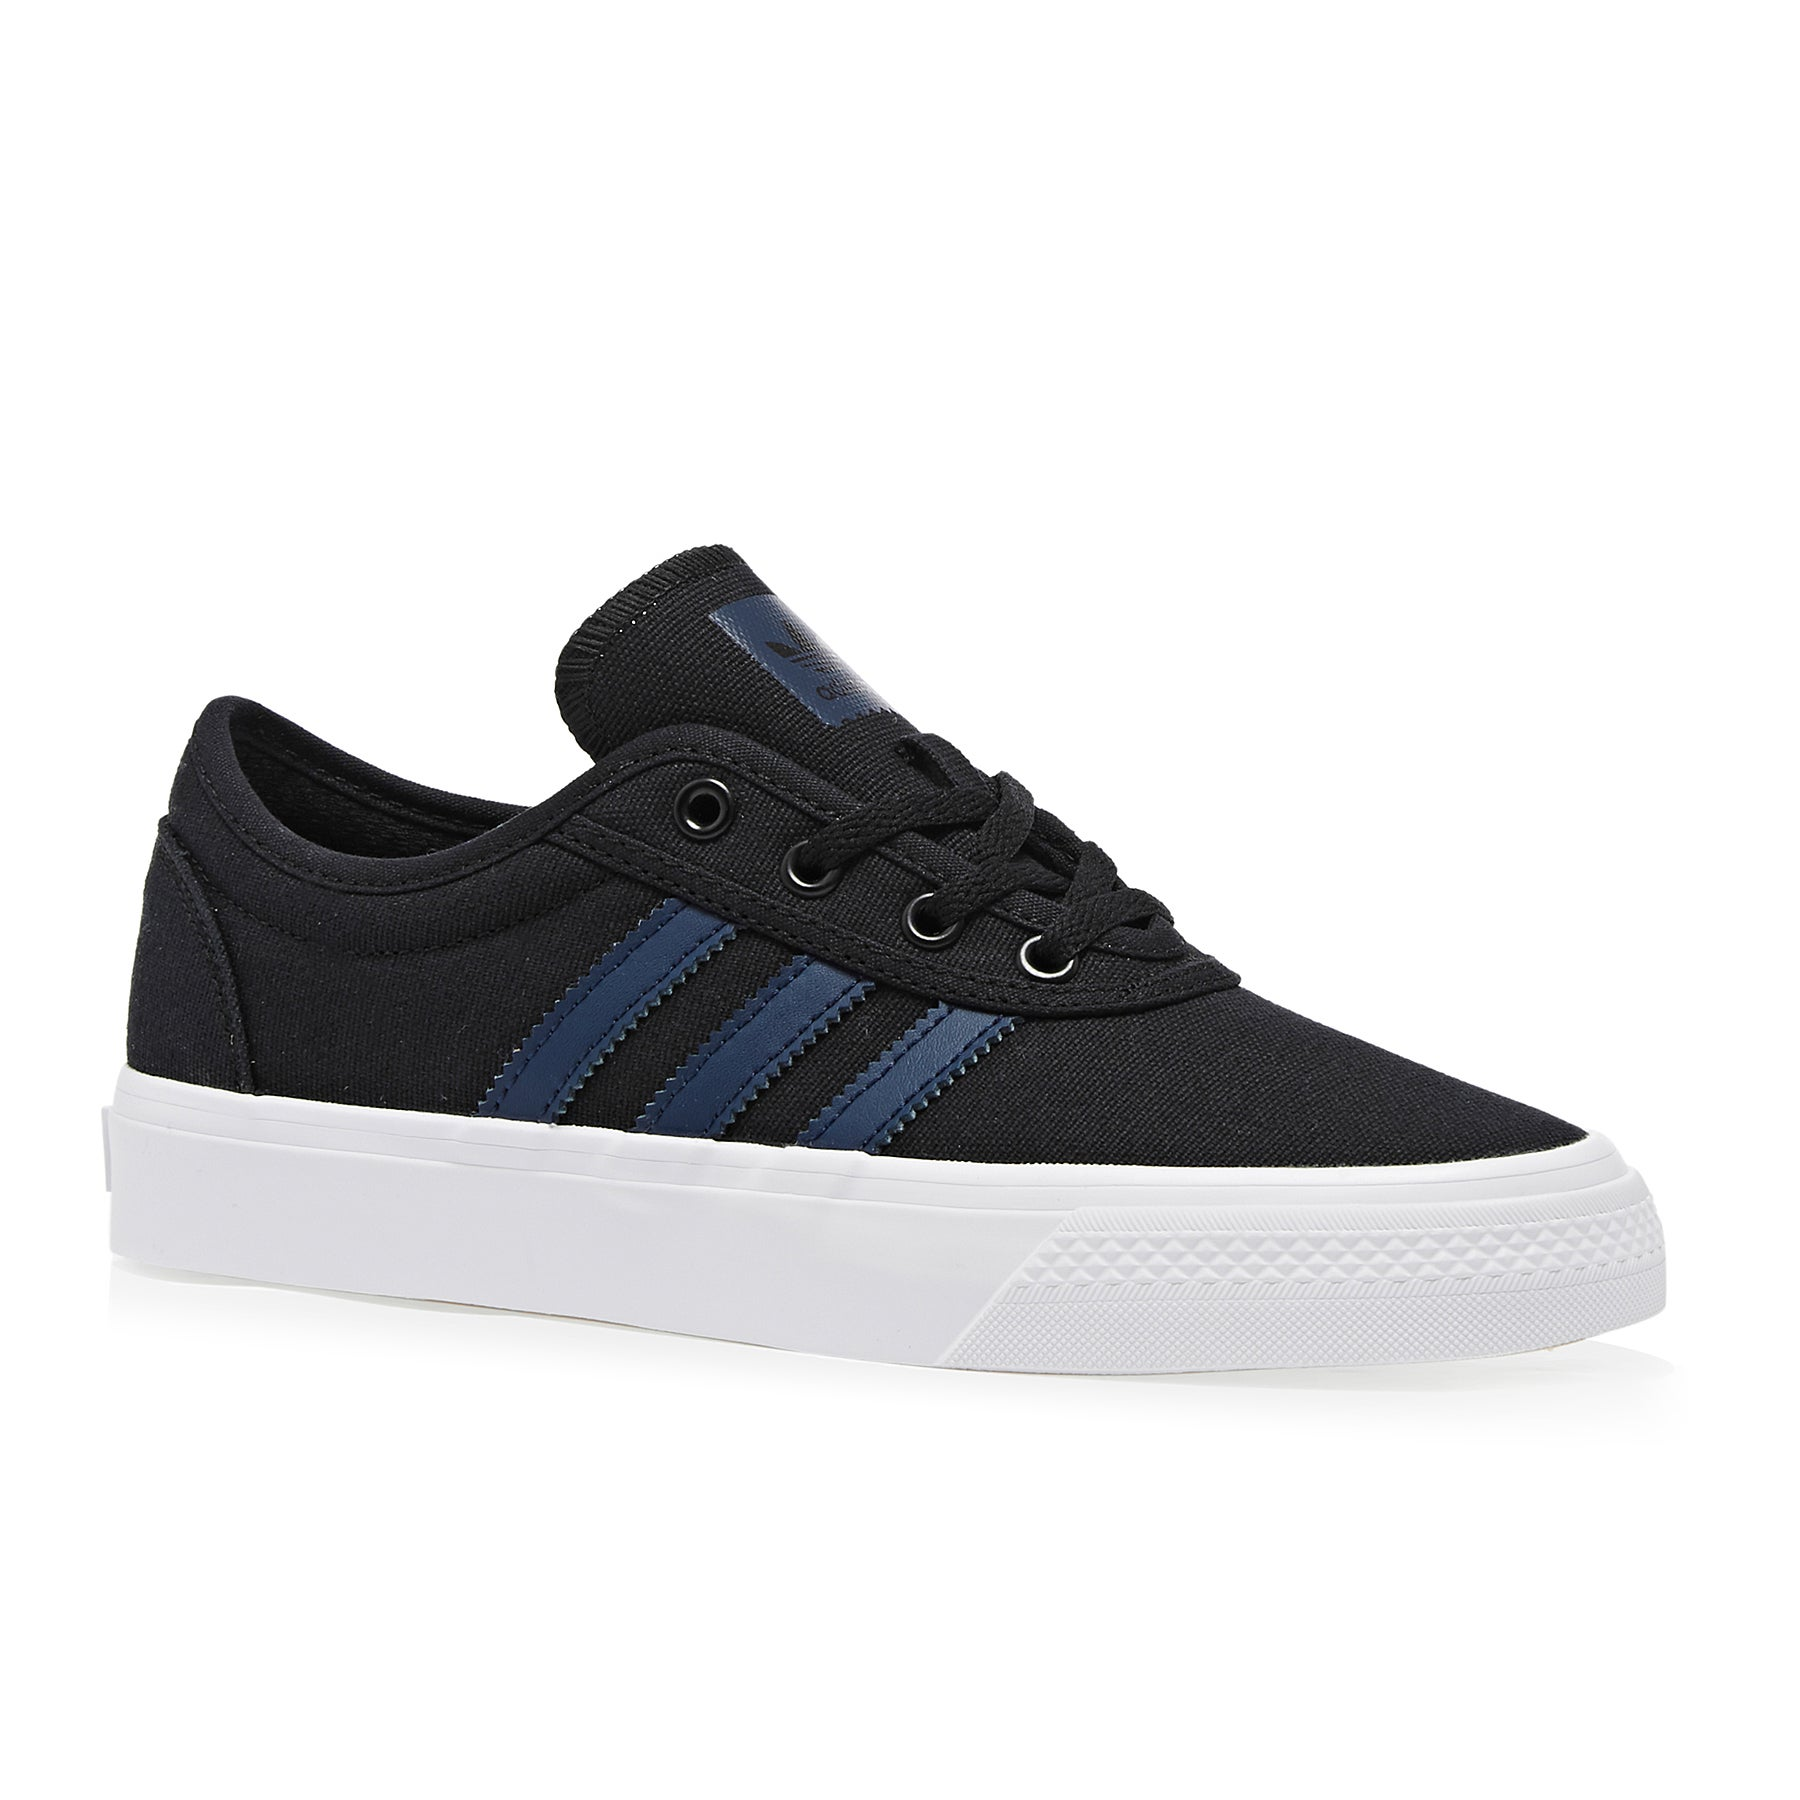 Adidas Adiease Kids Shoes - Black Navy Cloud White